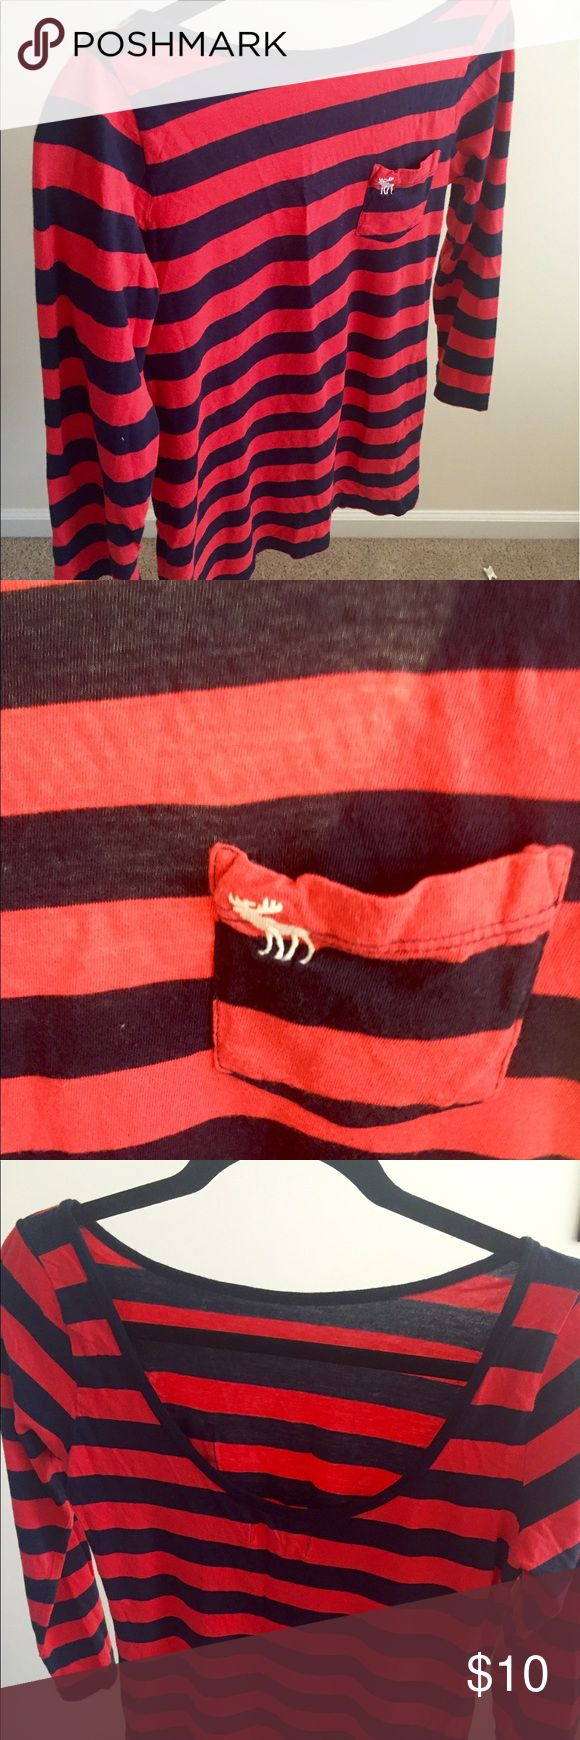 A&F stripe tshirt with deep back US M size Abercrombie & Fitch tshirt with red and black stripes. It has a deep scoop back with 3/4 skeeves. Abercrombie & Fitch Tops Tees - Long Sleeve